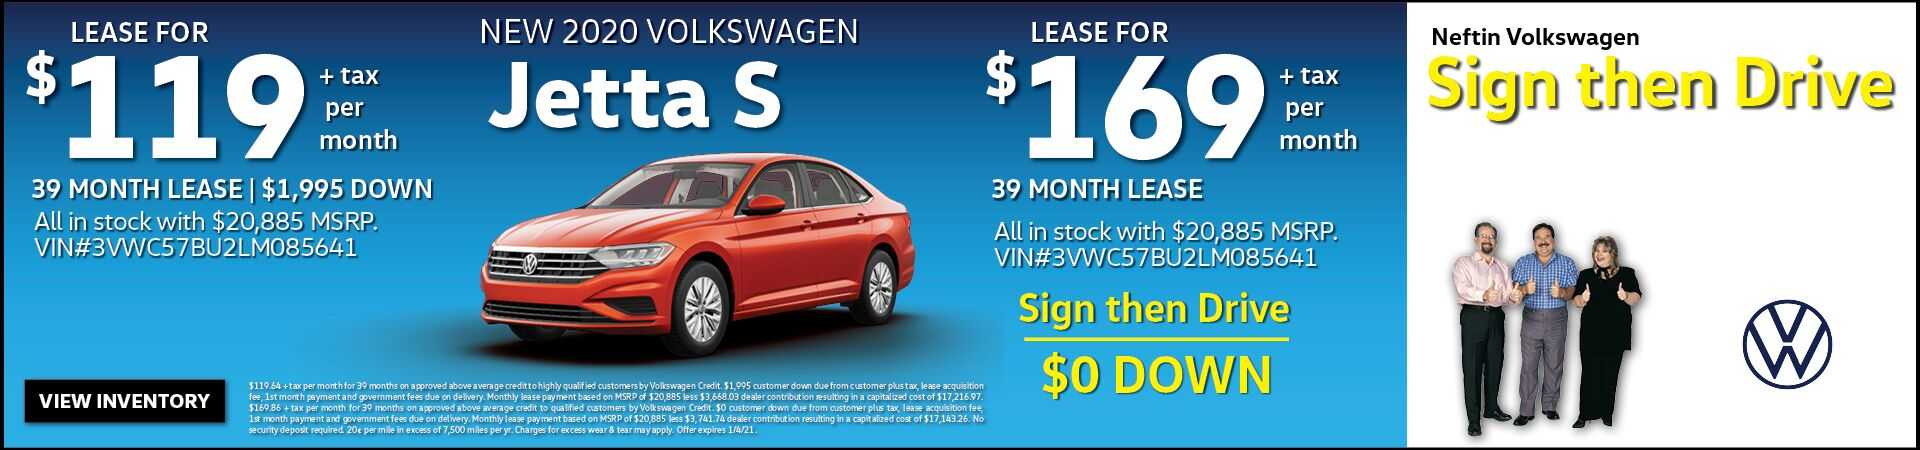 Nov. '20 Jetta S Lease Offer